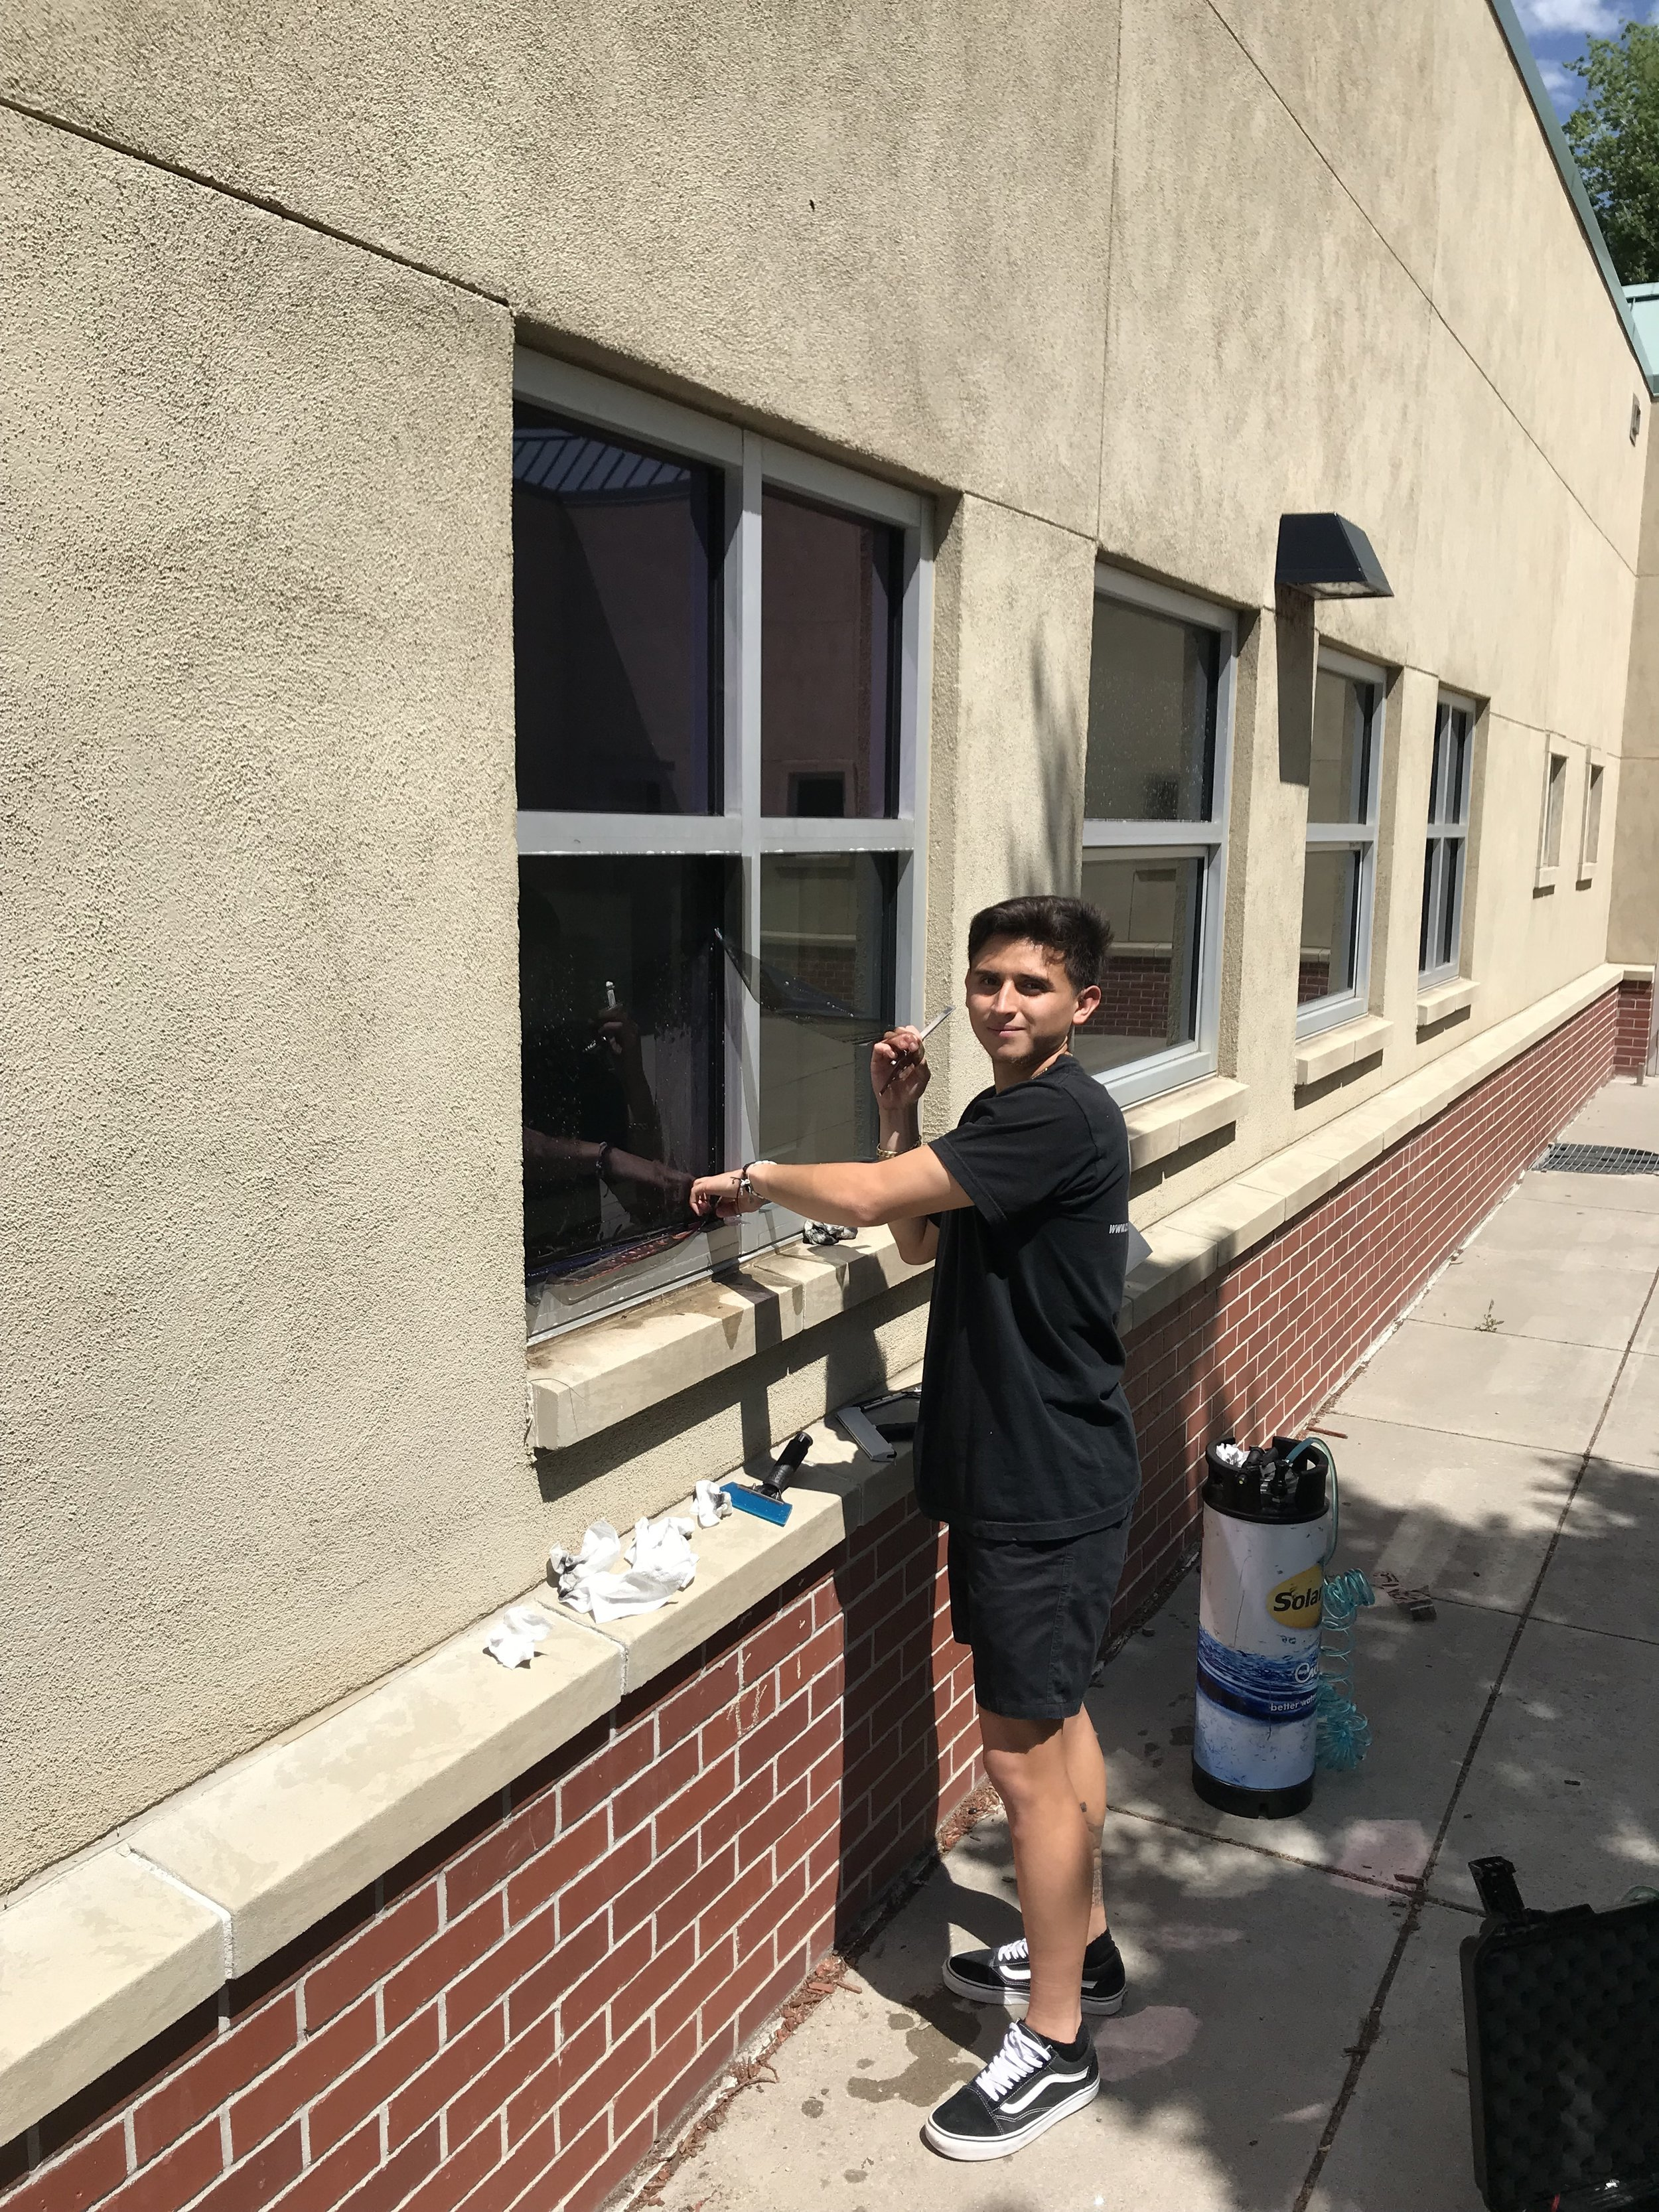 Bryan installing some exterior film. He's been with us every summer for 3 years, and has become an excellent Window Film Installer on his breaks from College.